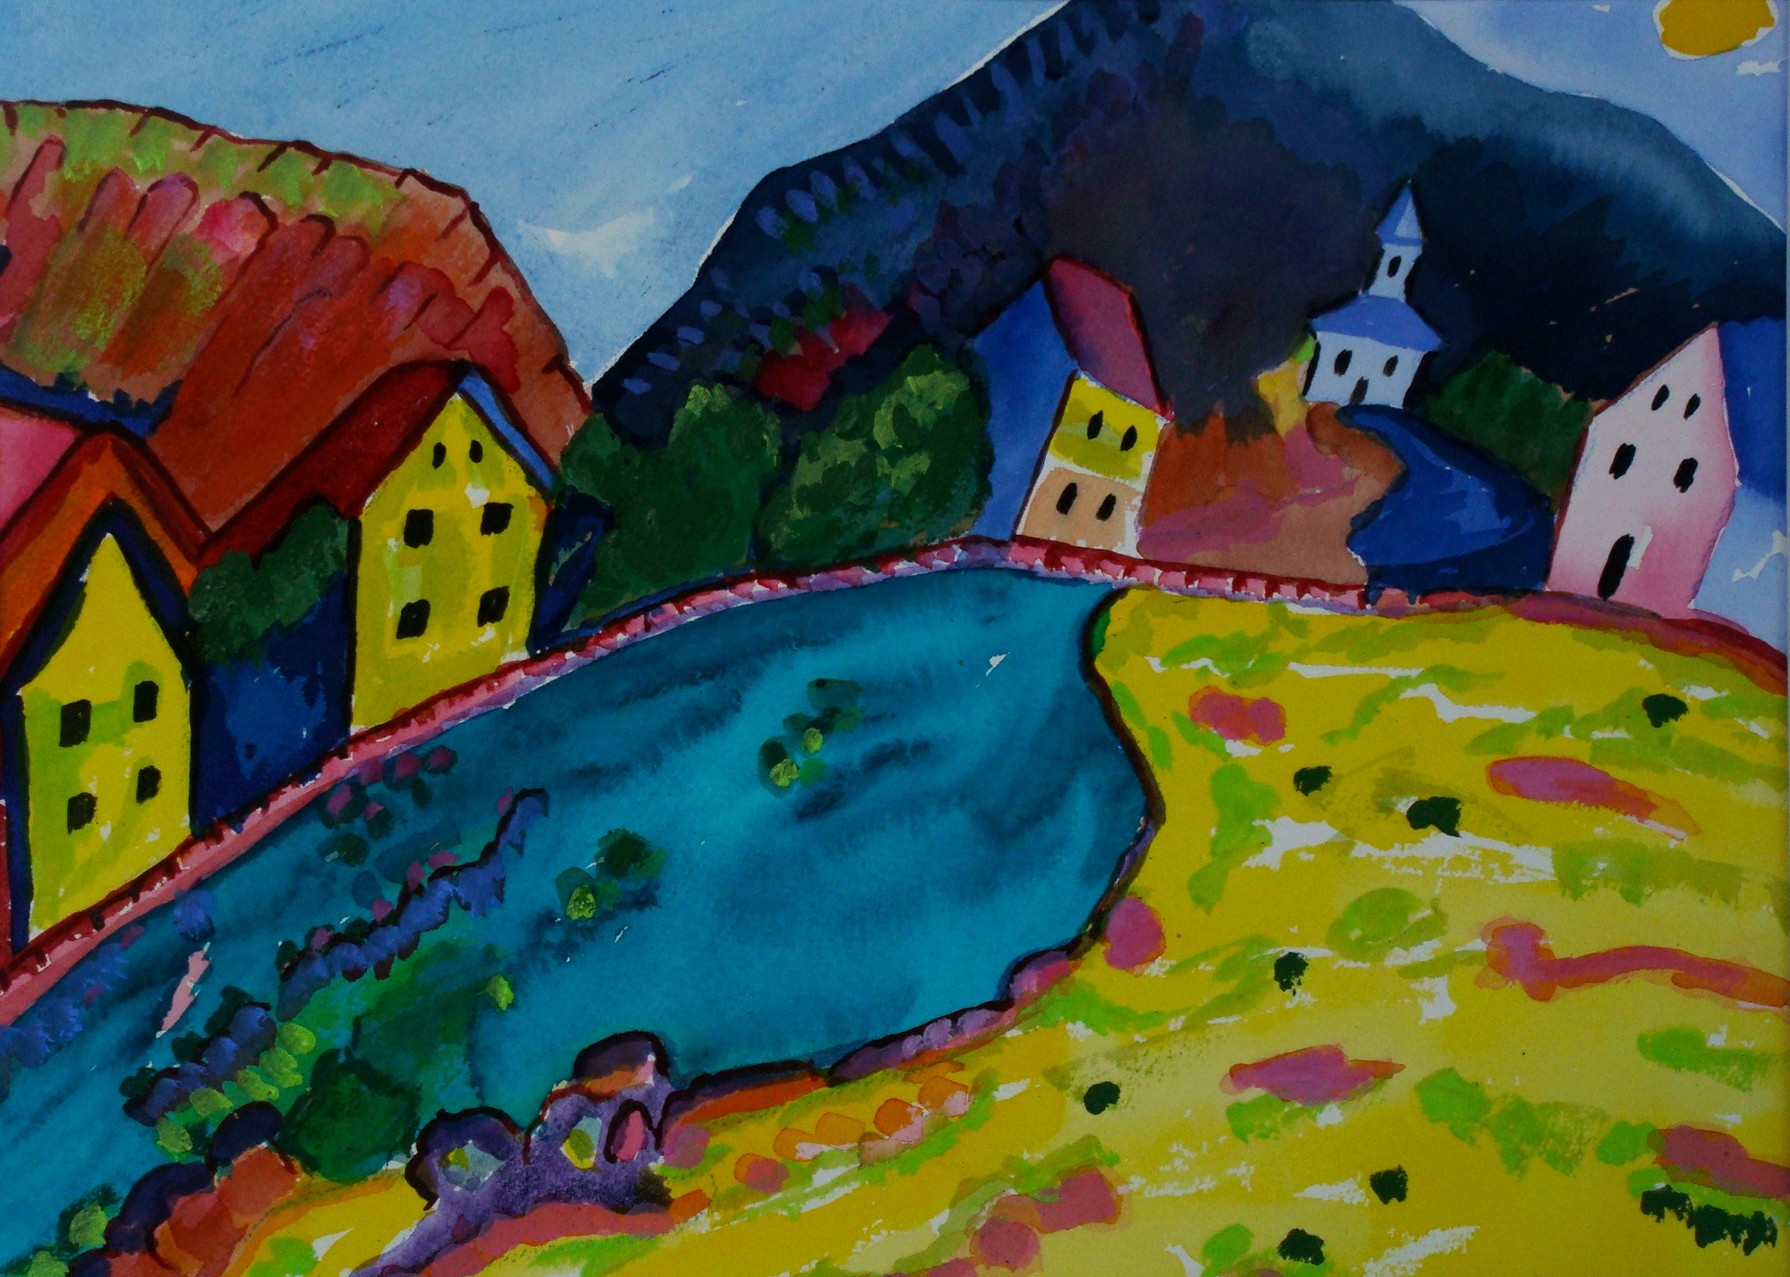 Murnau, watercolor, 13.5 x 10.5, 2014 SOLD